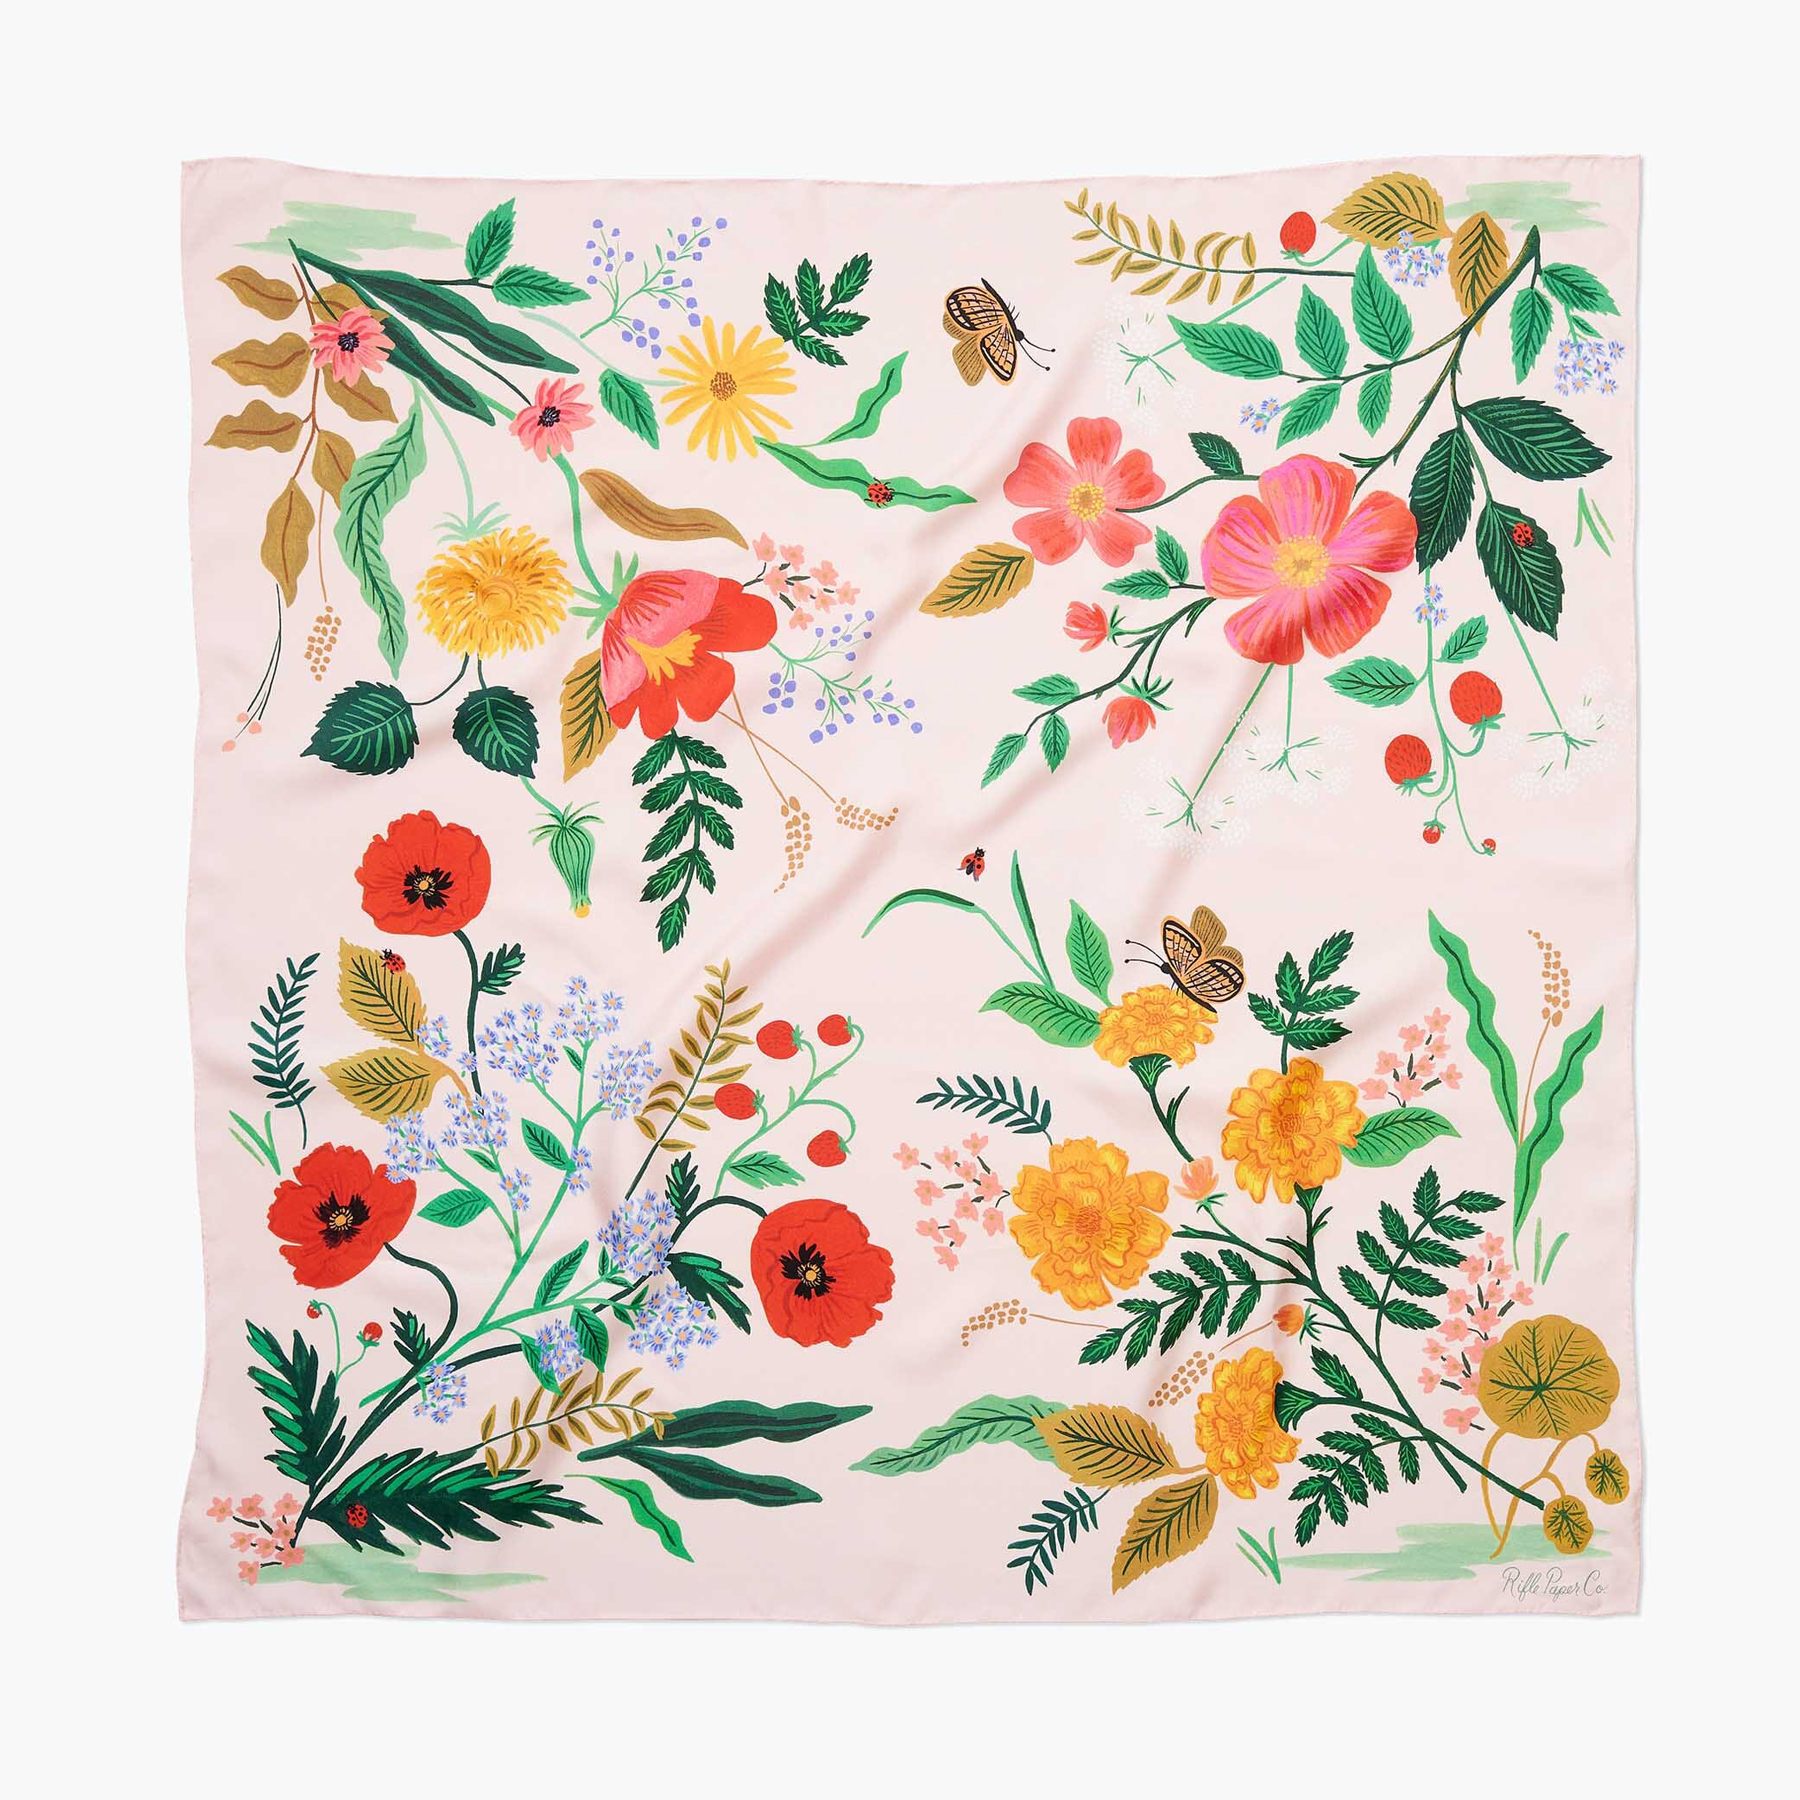 Best gifts for grandma - Rifle Paper Co. Botanical Silk Scarf